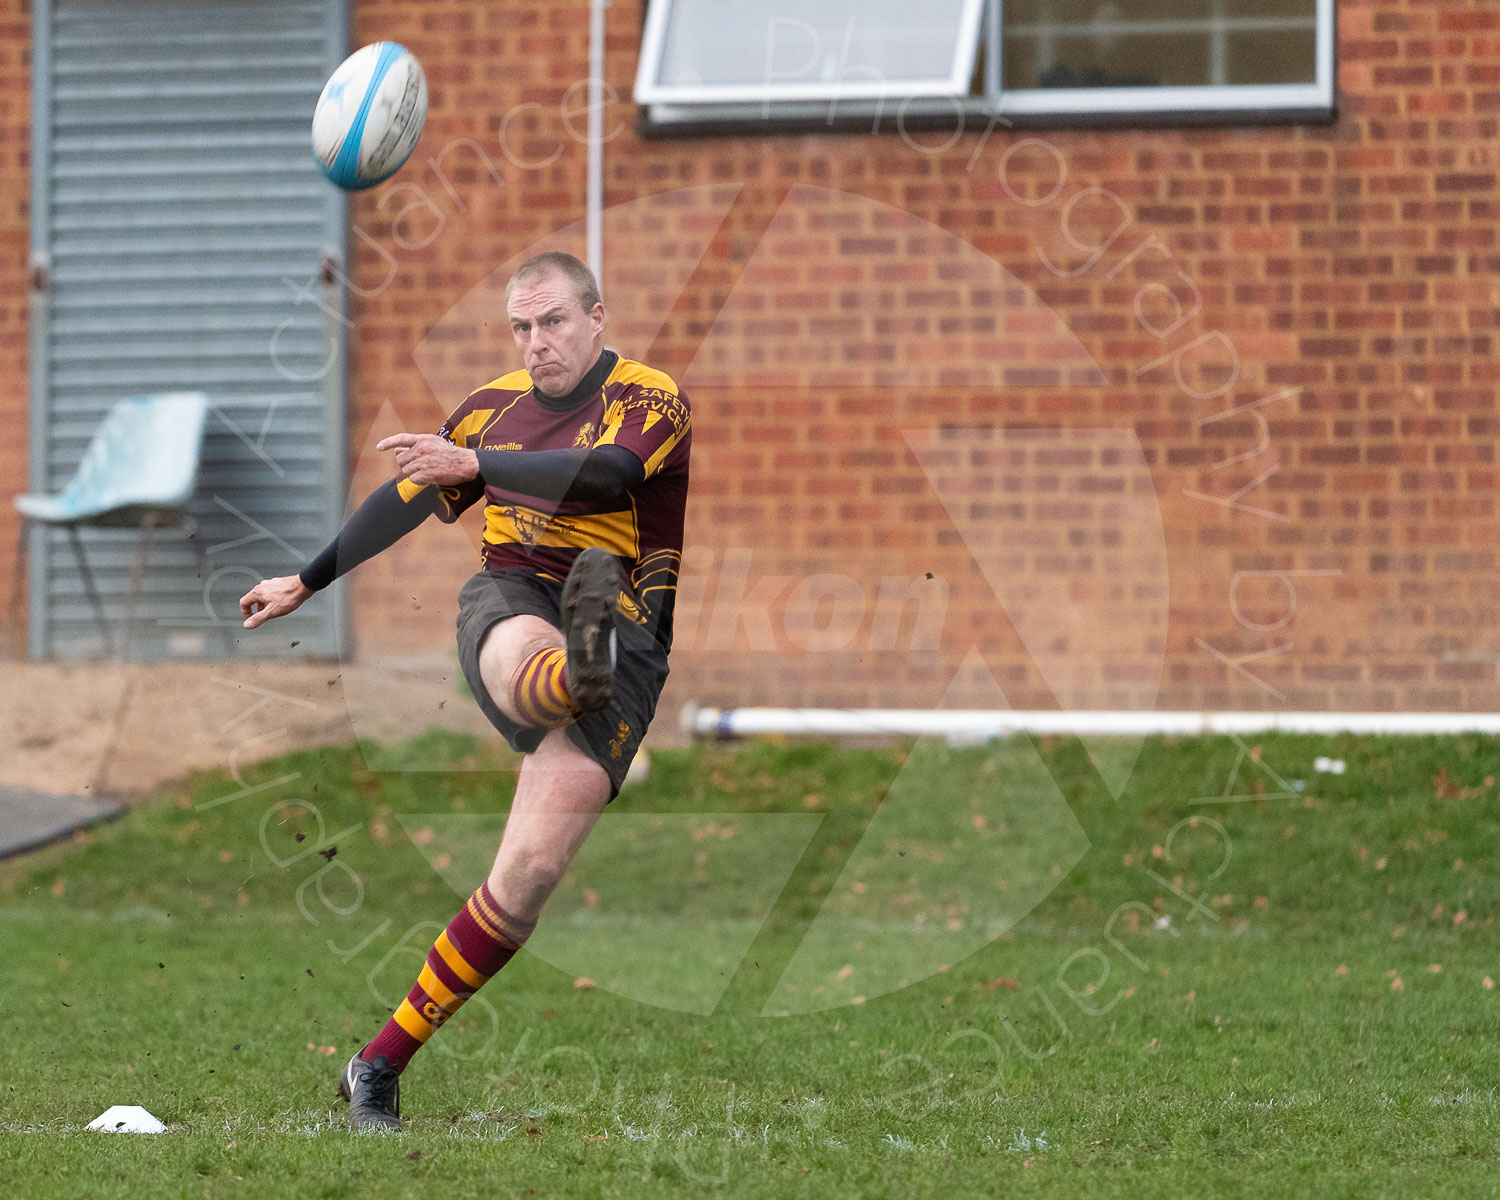 20181027 Amp Extras vs St Neots 2nd XV #2442